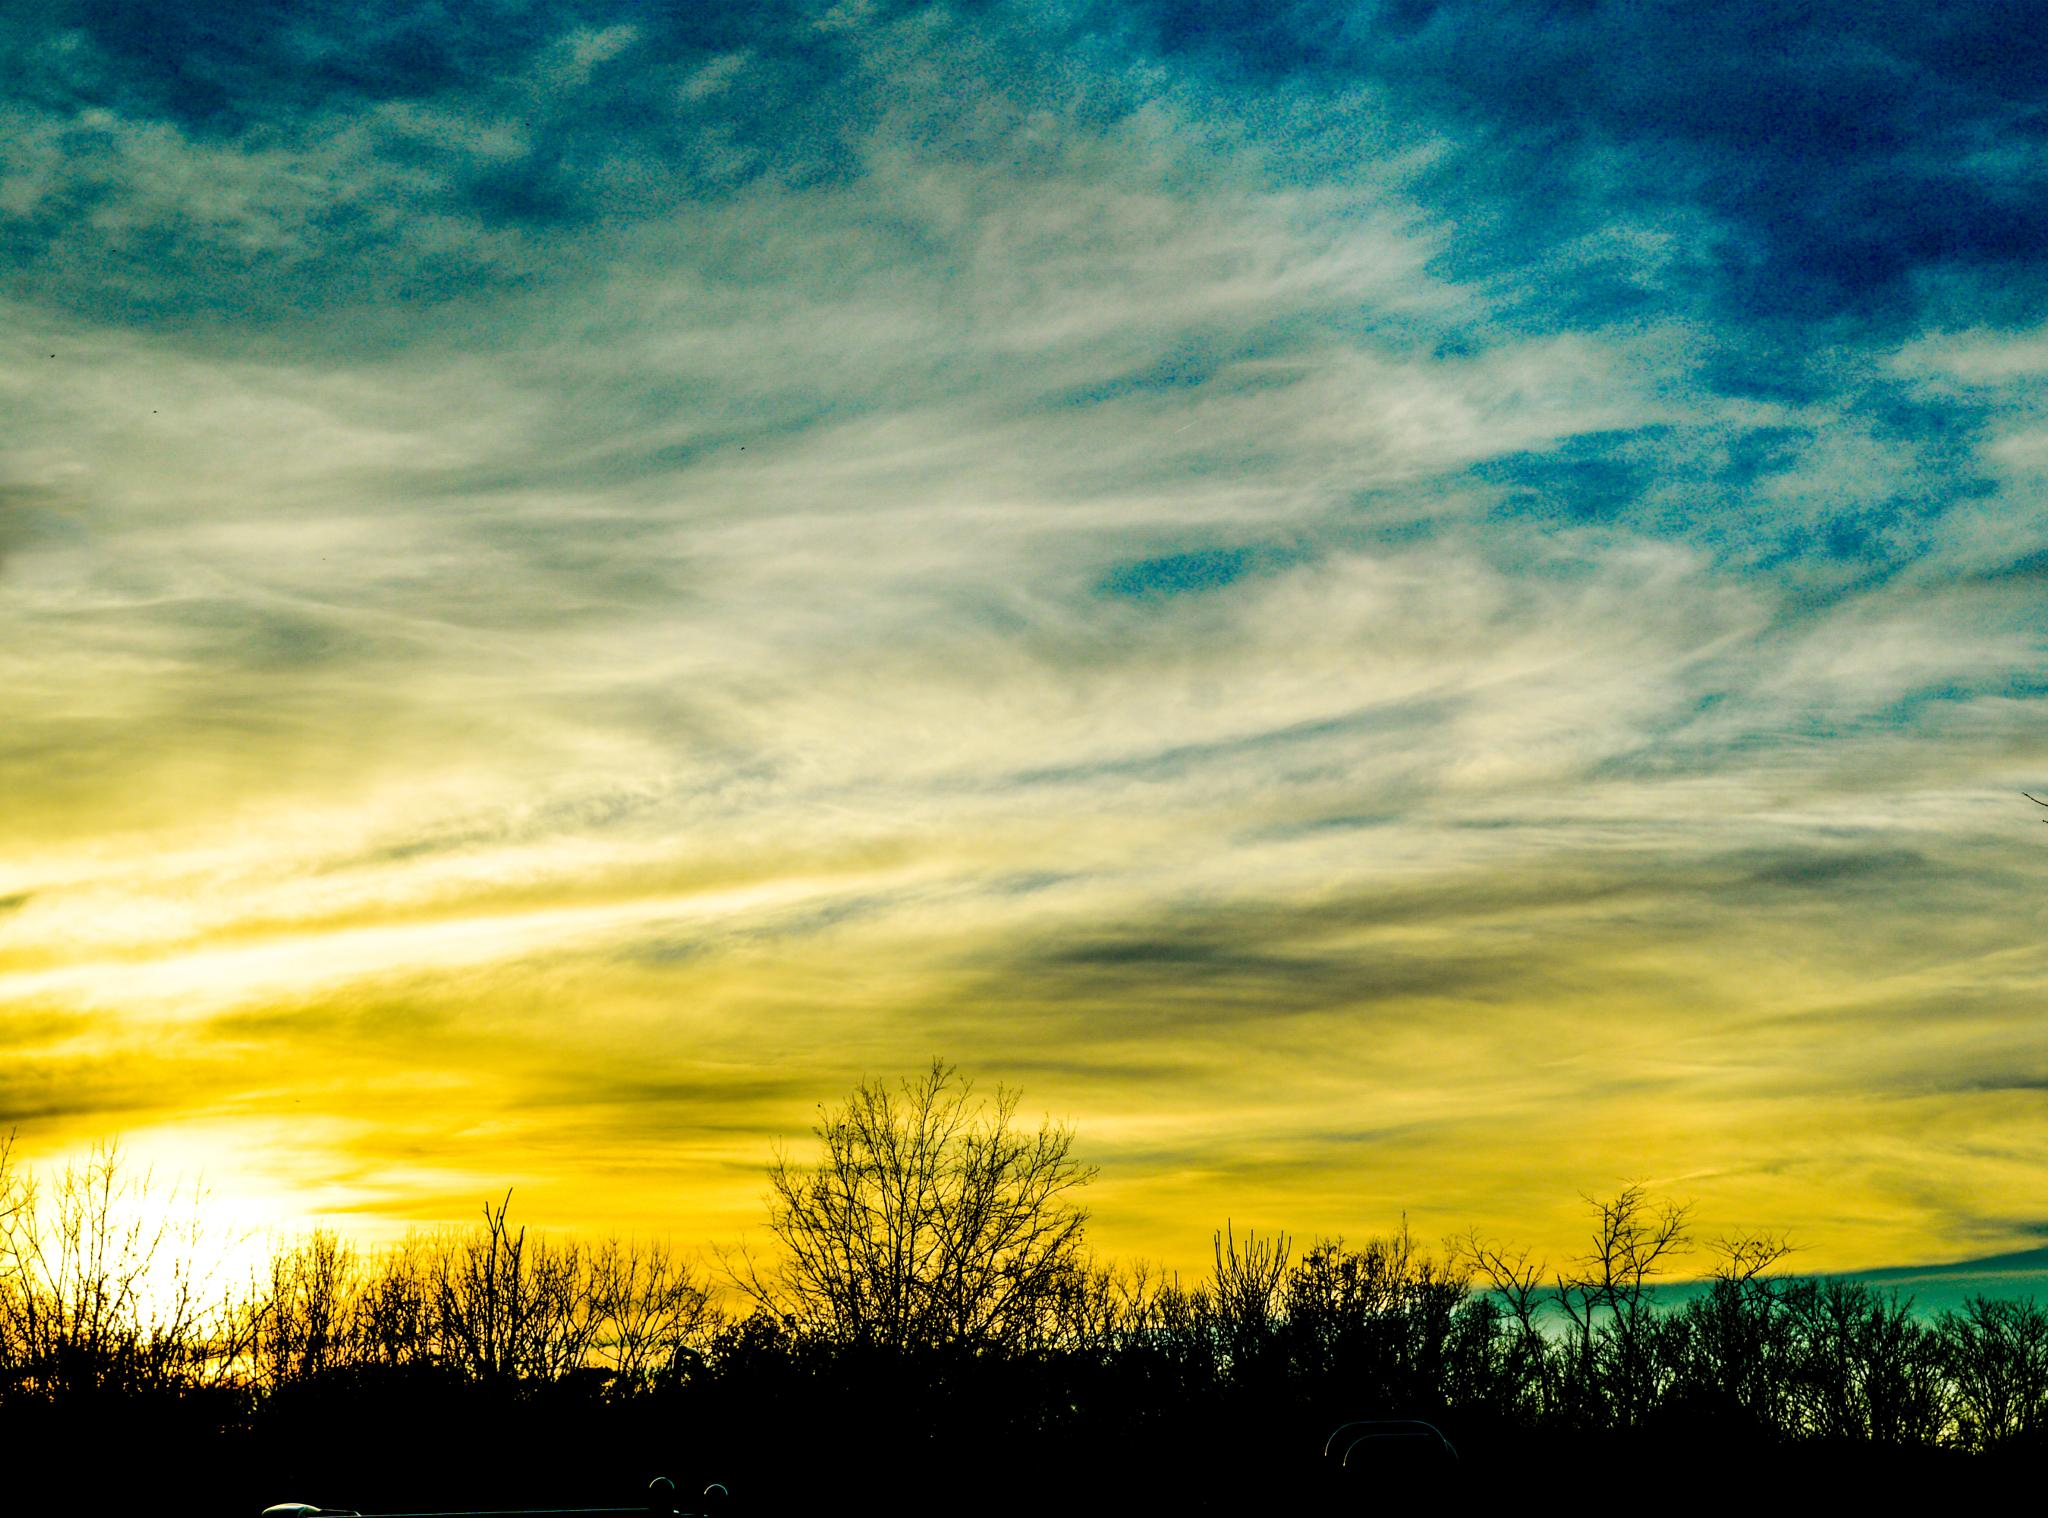 Sky painting by paul.gallwey